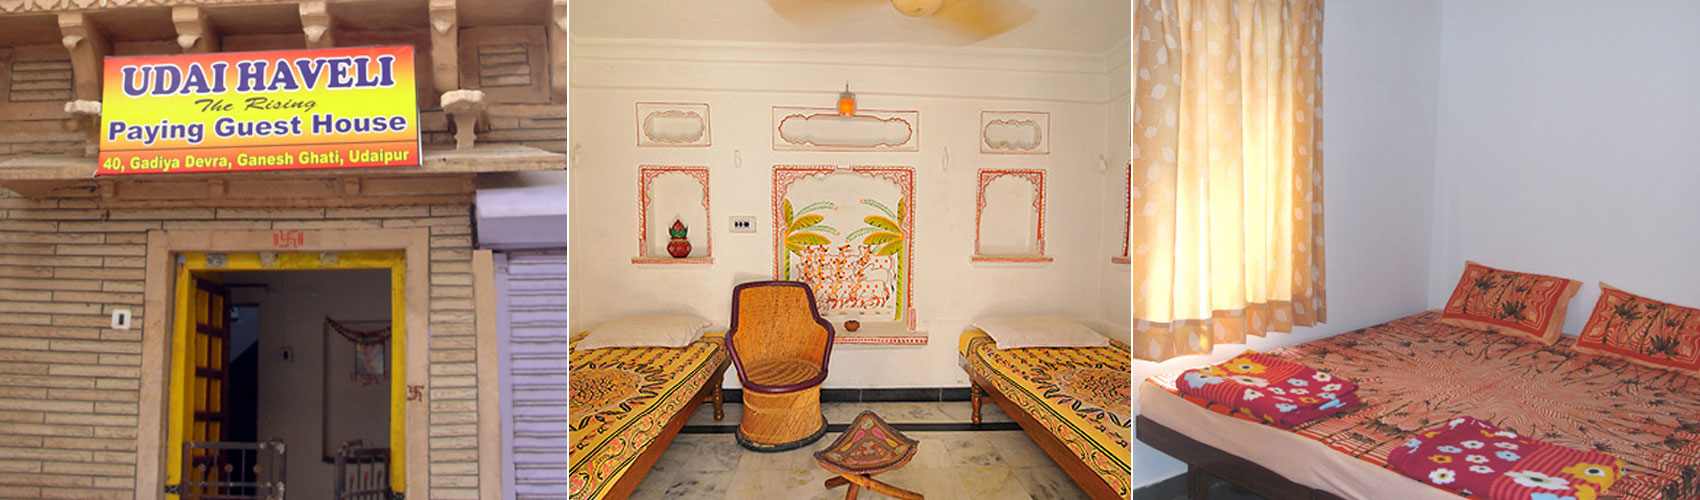 Udai Haveli Guest House Udaipur